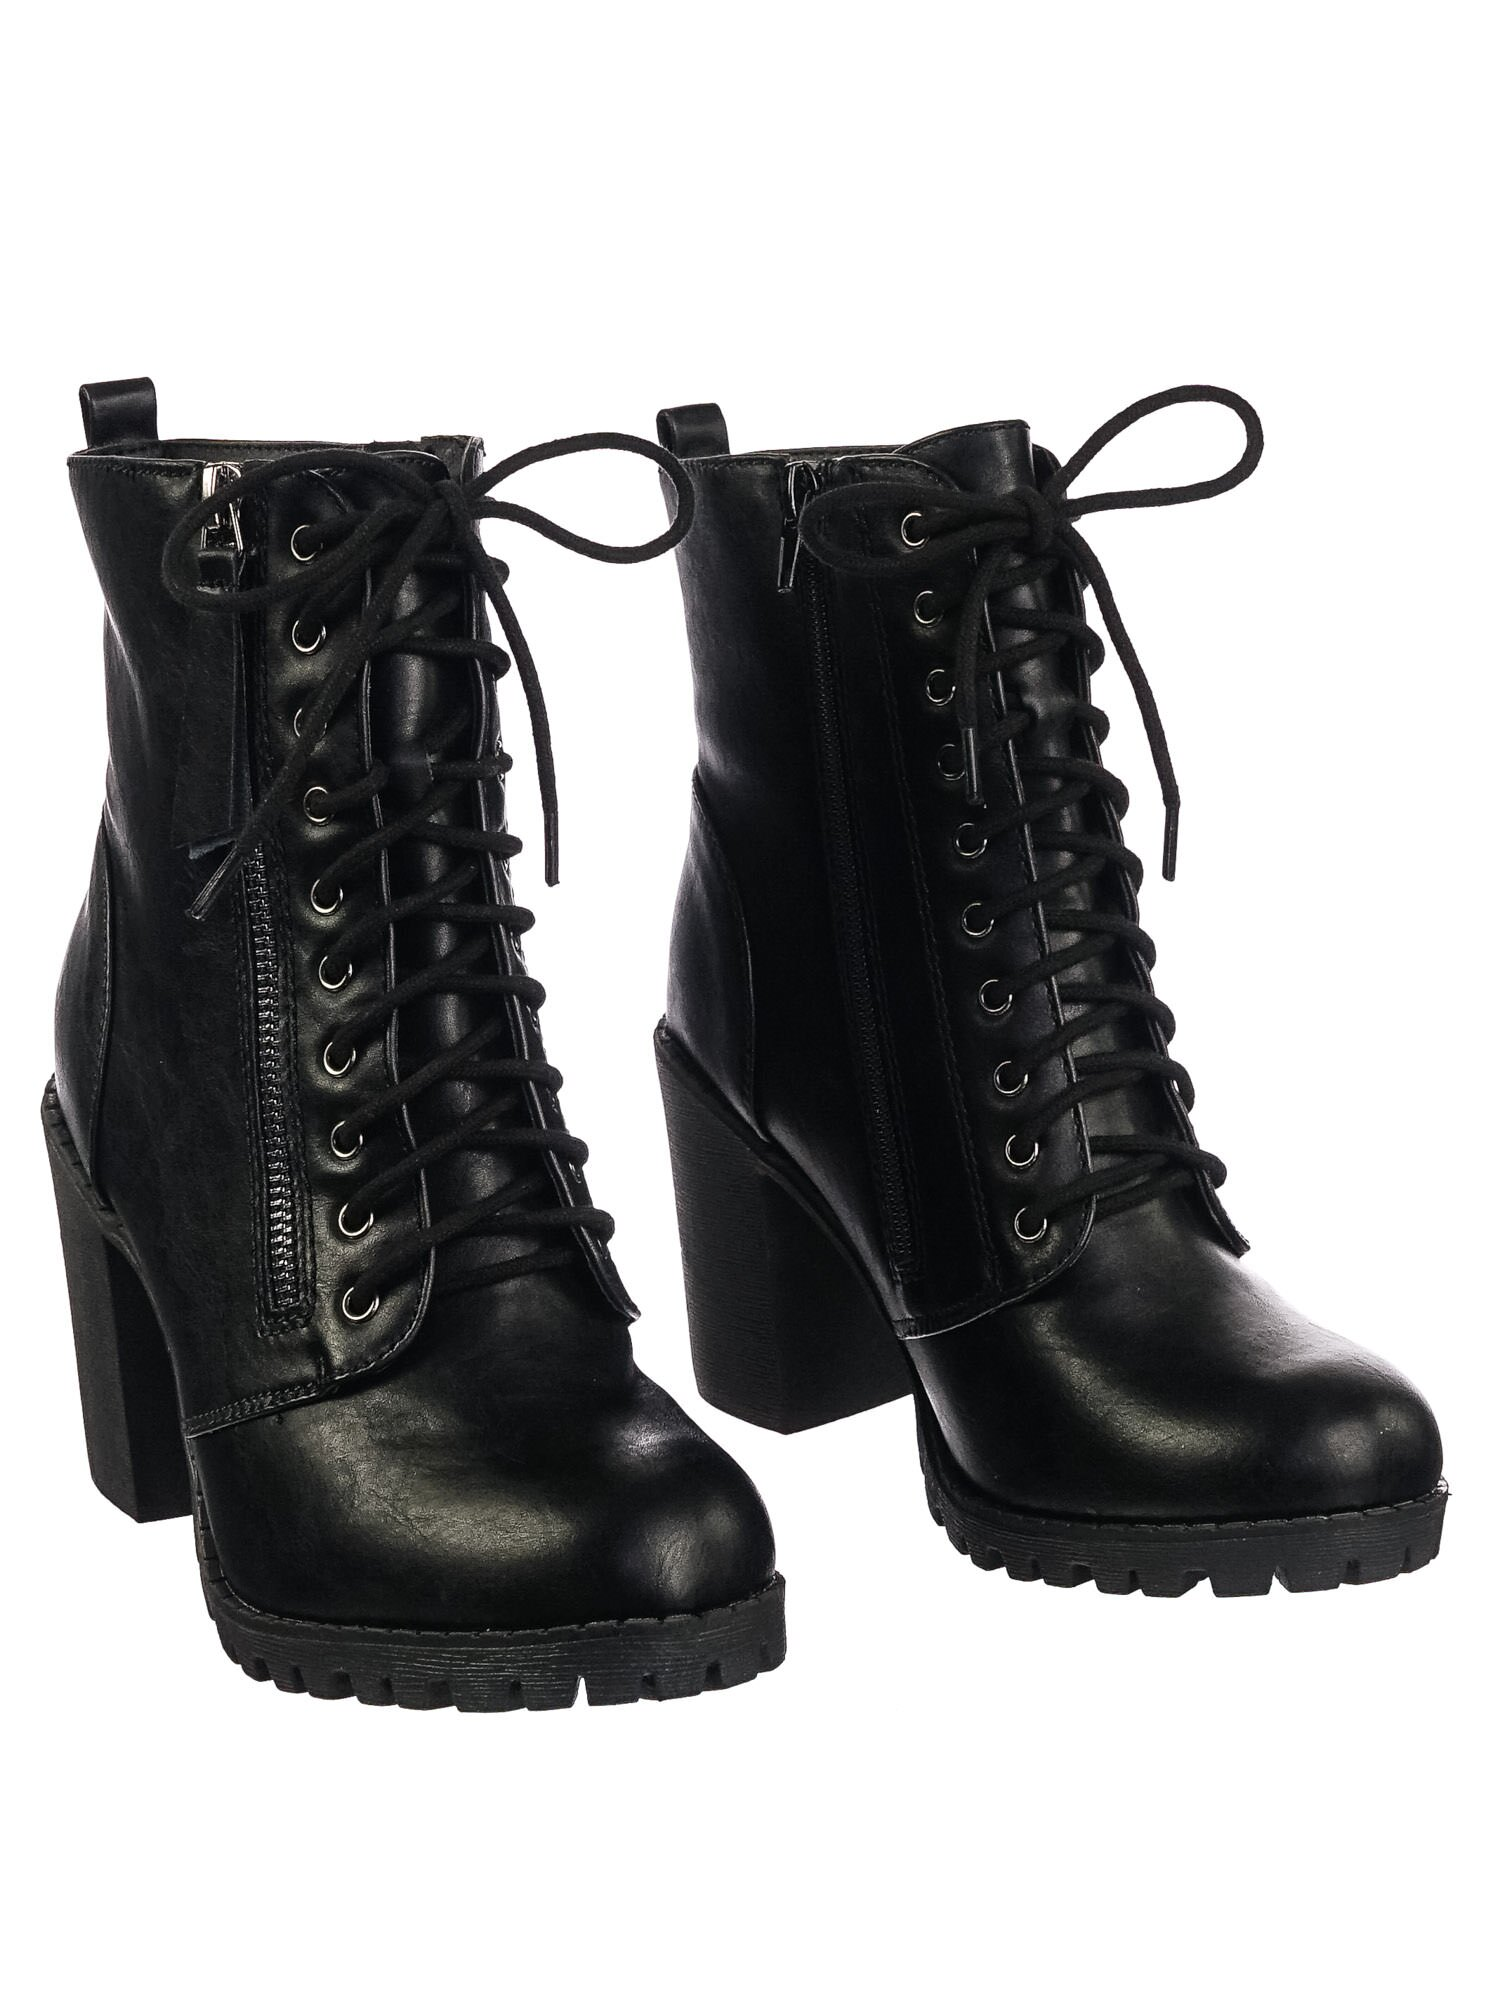 28ca9e077a0c Malia Black Pu by Soda Military Lace Up Combat Ankle Boot On Chunky Block  Heel Lug